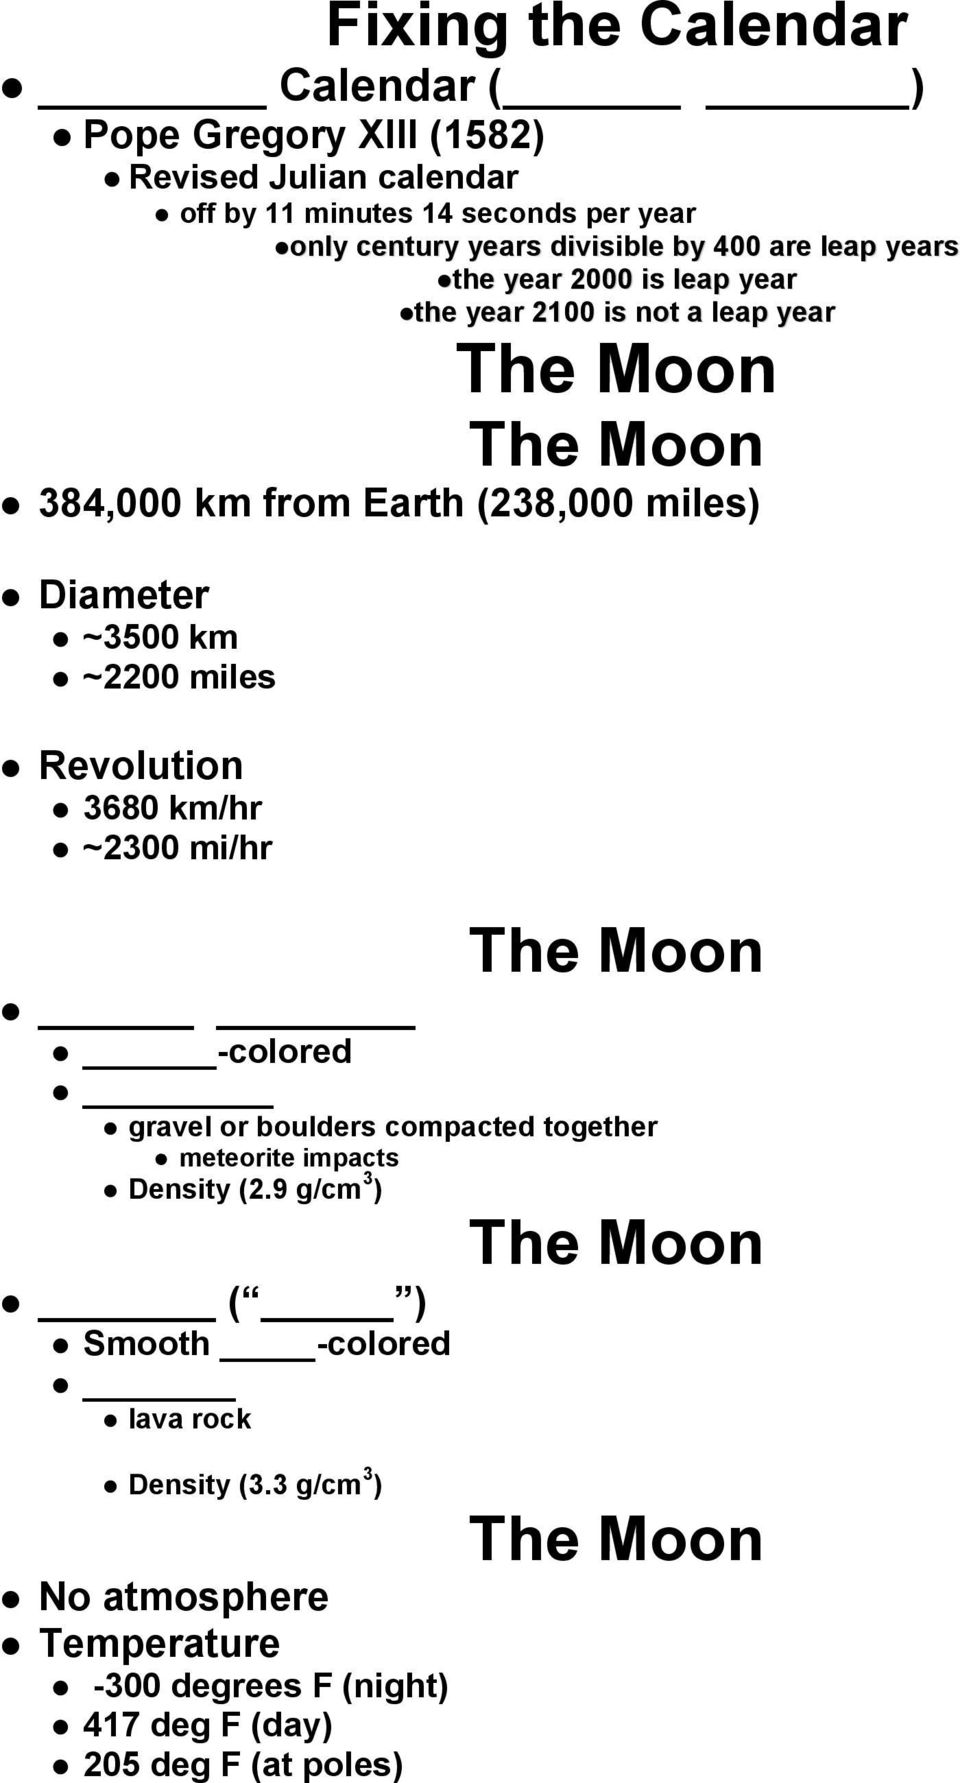 ~3500 km ~2200 miles Revolution 3680 km/hr ~2300 mi/hr The Moon -colored gravel or boulders compacted together meteorite impacts Density (2.